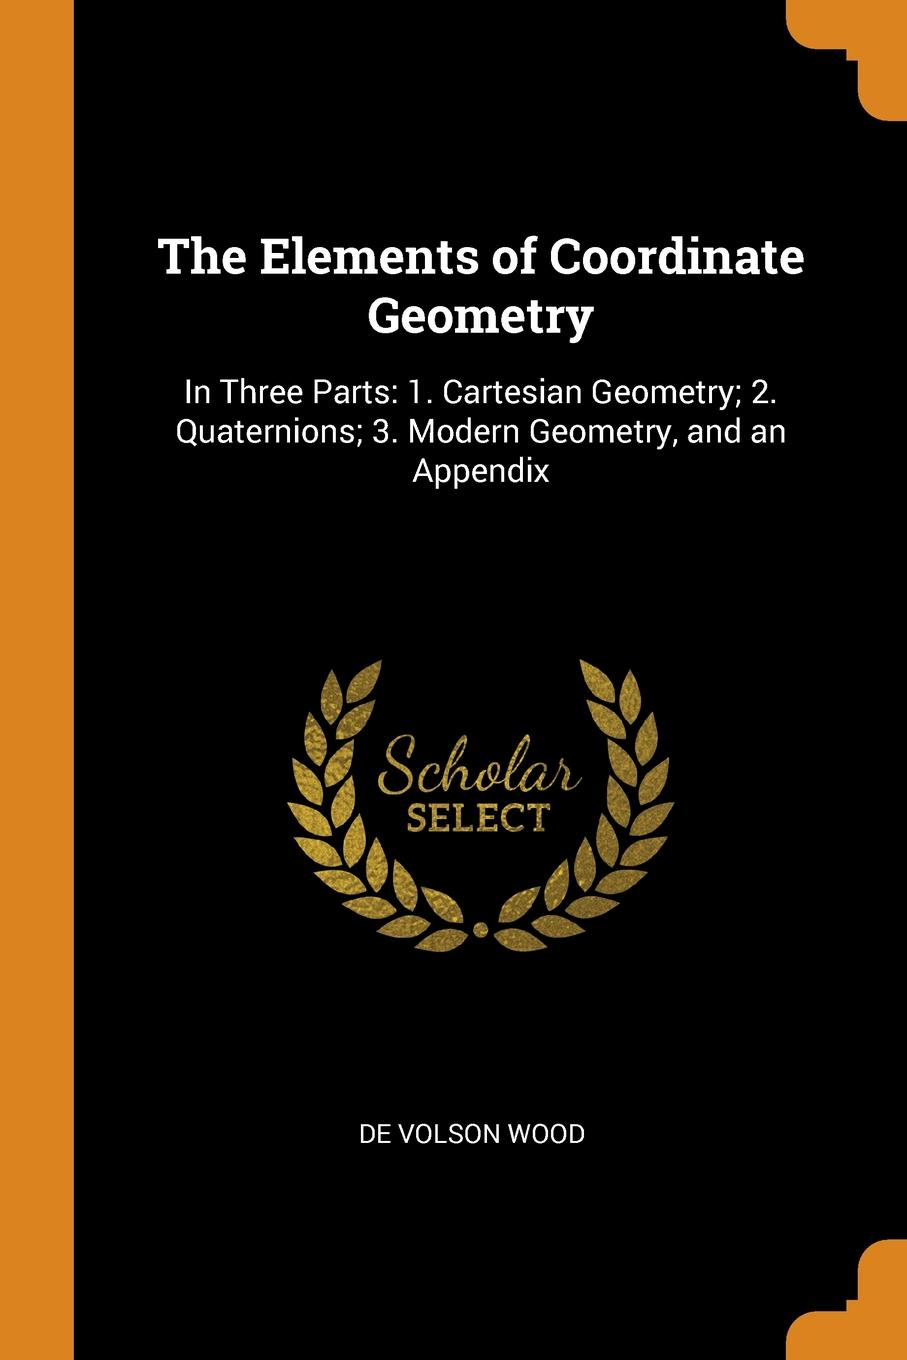 De Volson Wood The Elements of Coordinate Geometry. In Three Parts: 1. Cartesian Geometry; 2. Quaternions; 3. Modern Geometry, and an Appendix de volson wood the luminiferous aether